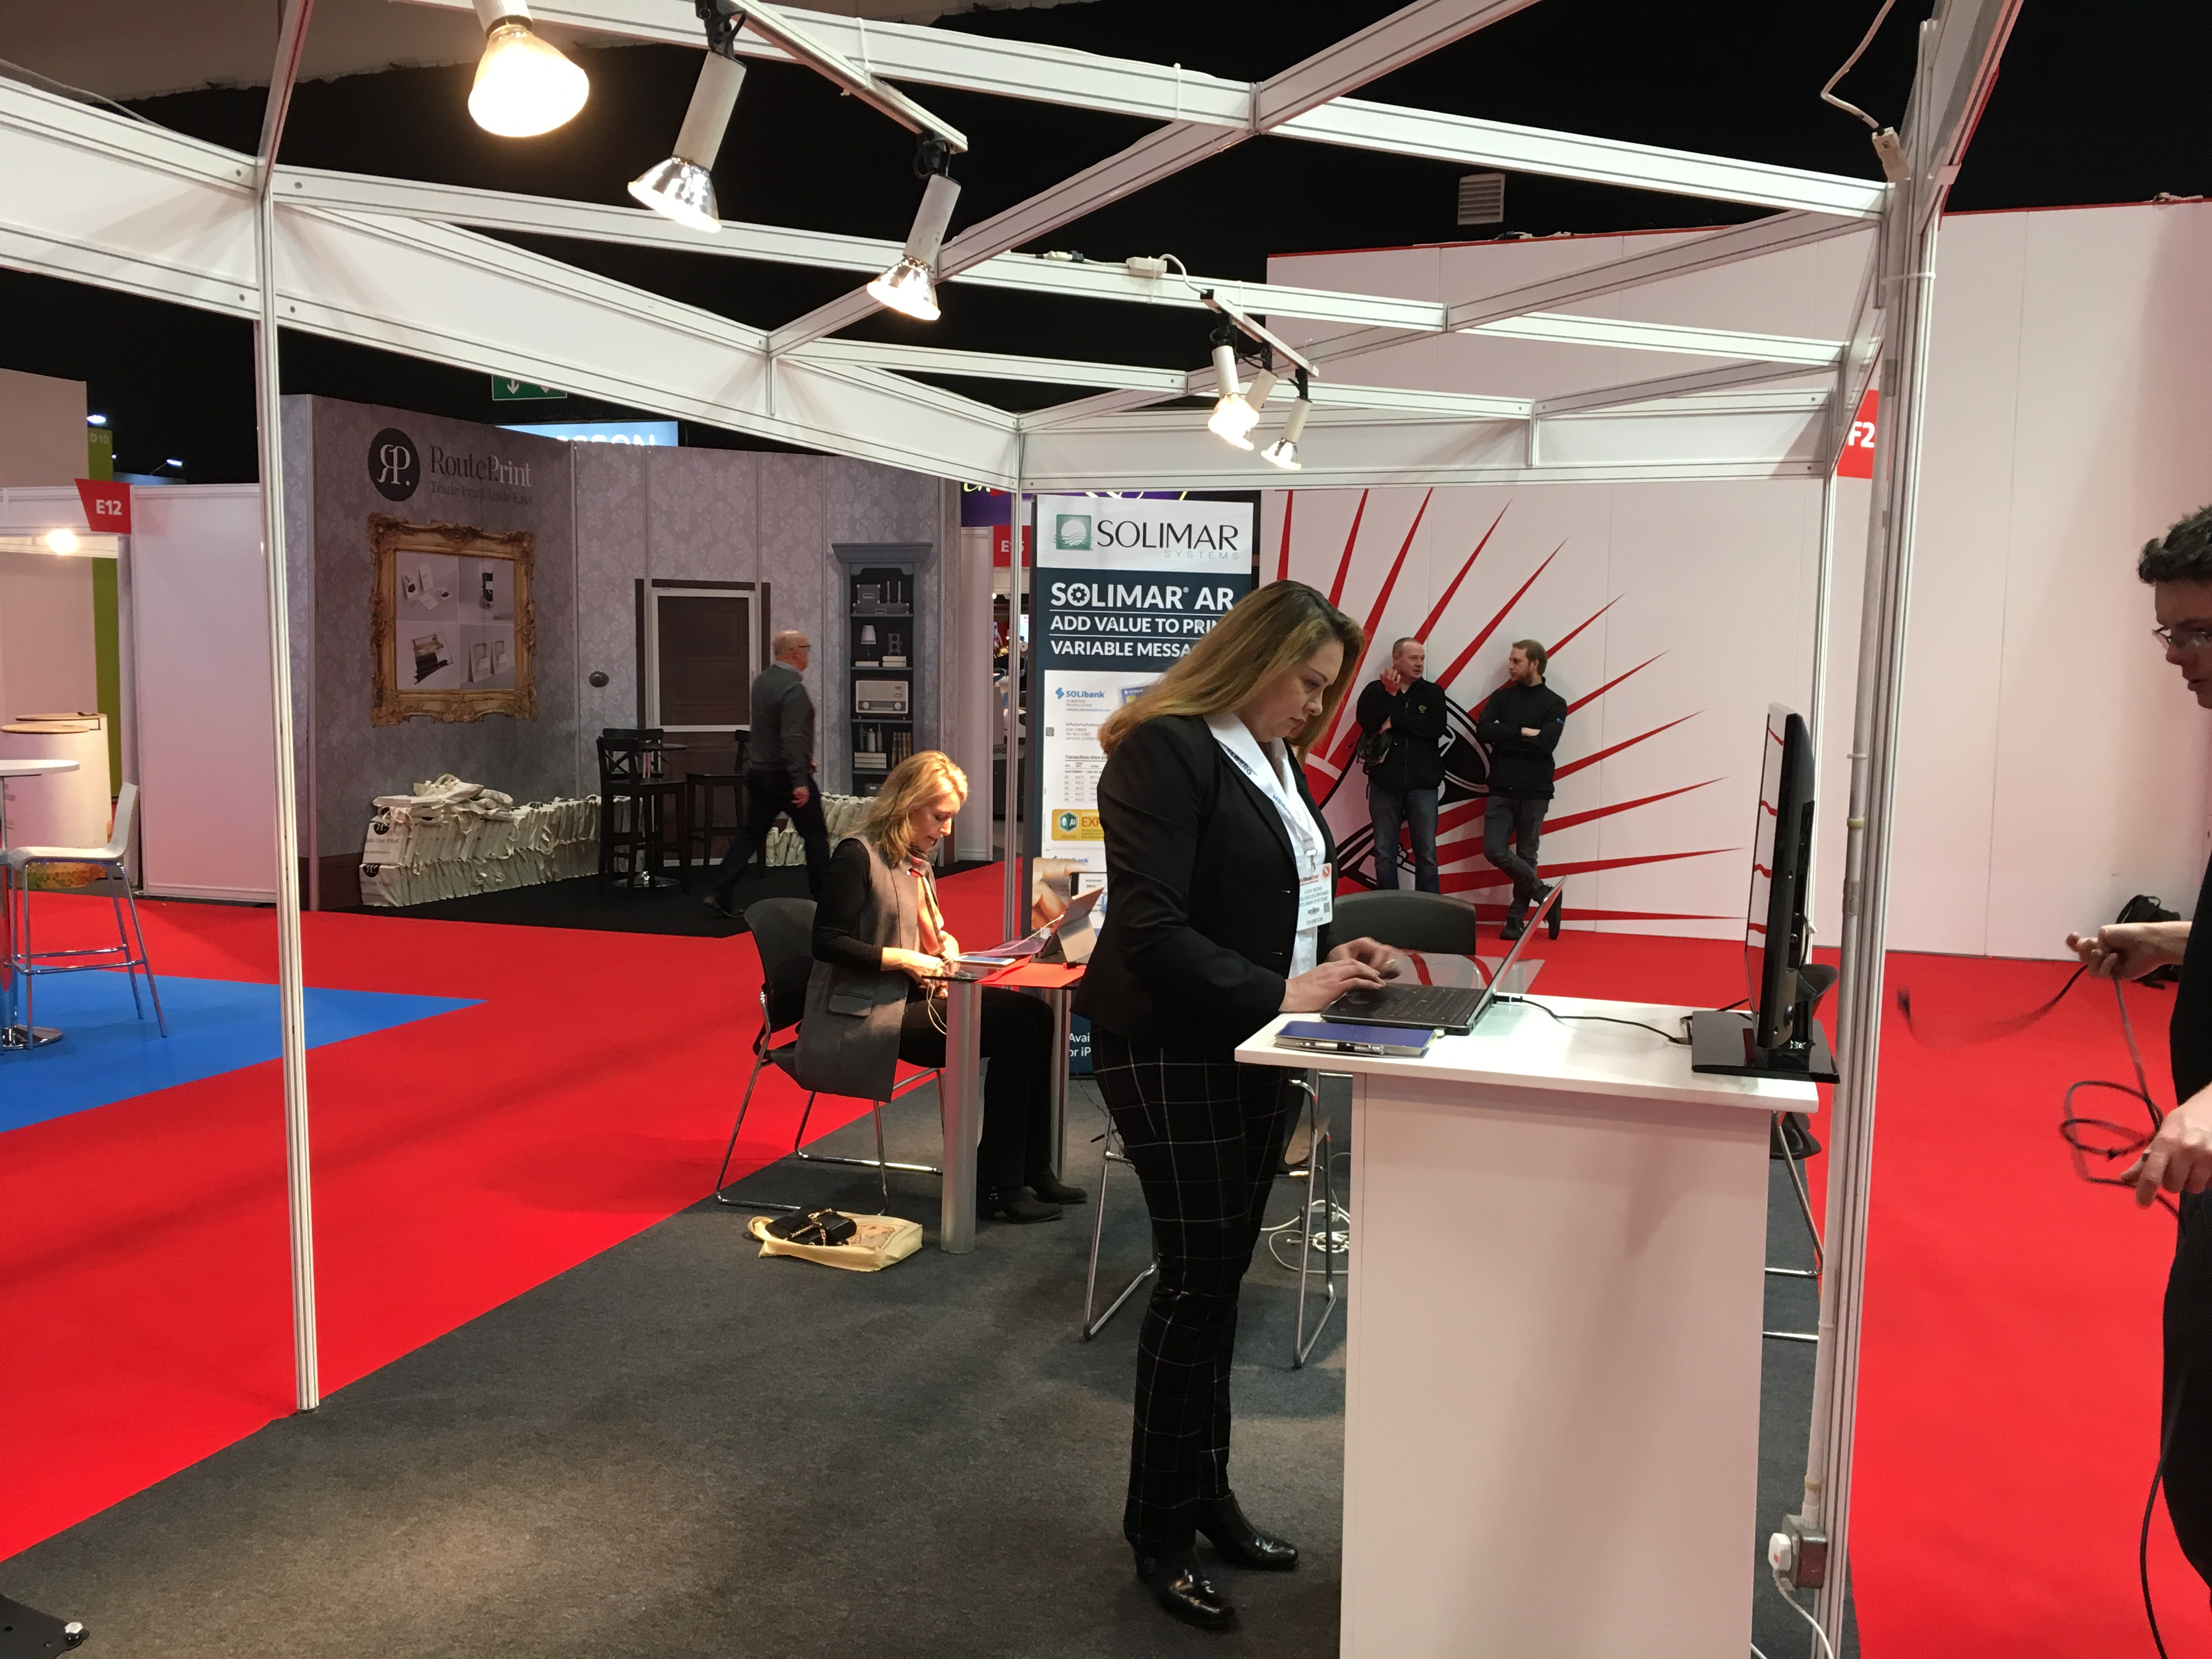 Solimar Systems, PrintWeekLive, PrintWeek, UK, PDF, Concatenate, Optimize PDFs, Commingle, Barcode, Augmented Reality, AR, Whitepaper Factory, Rubika, Chemistry, Assistive Technology